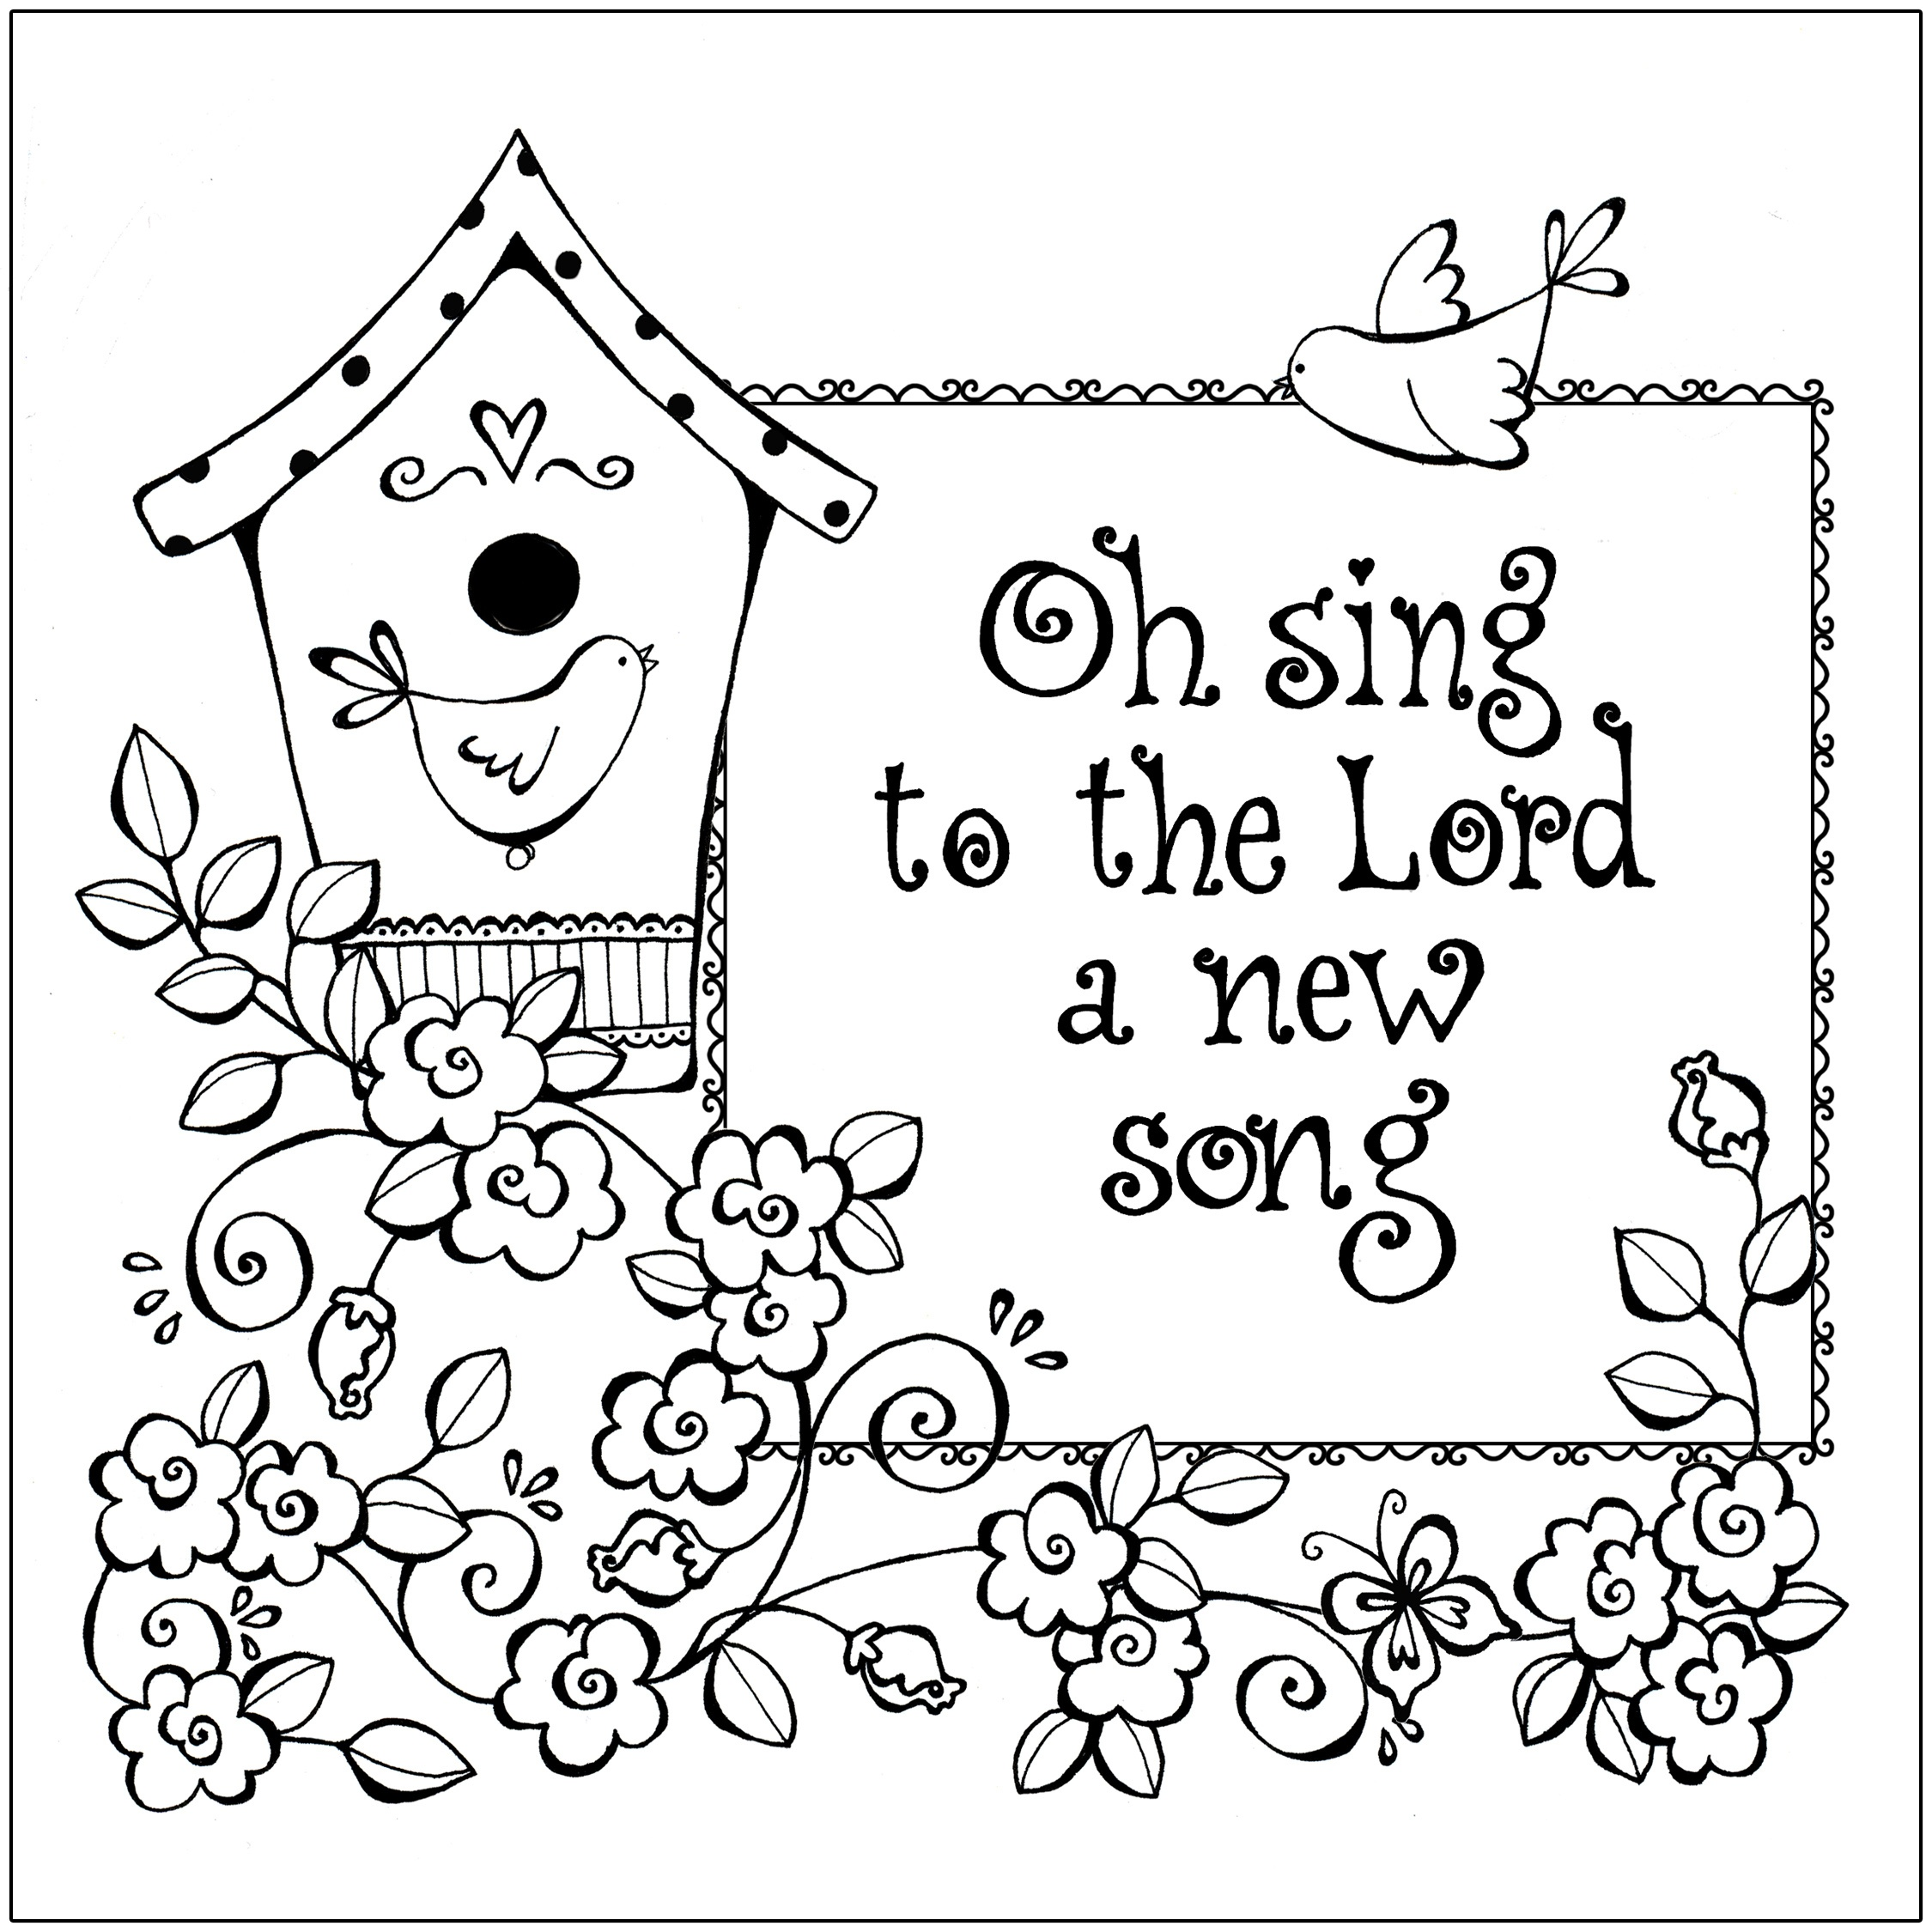 Free Printable Christian Coloring Pages For Kids - Best Coloring - Free Printable Bible Coloring Pages